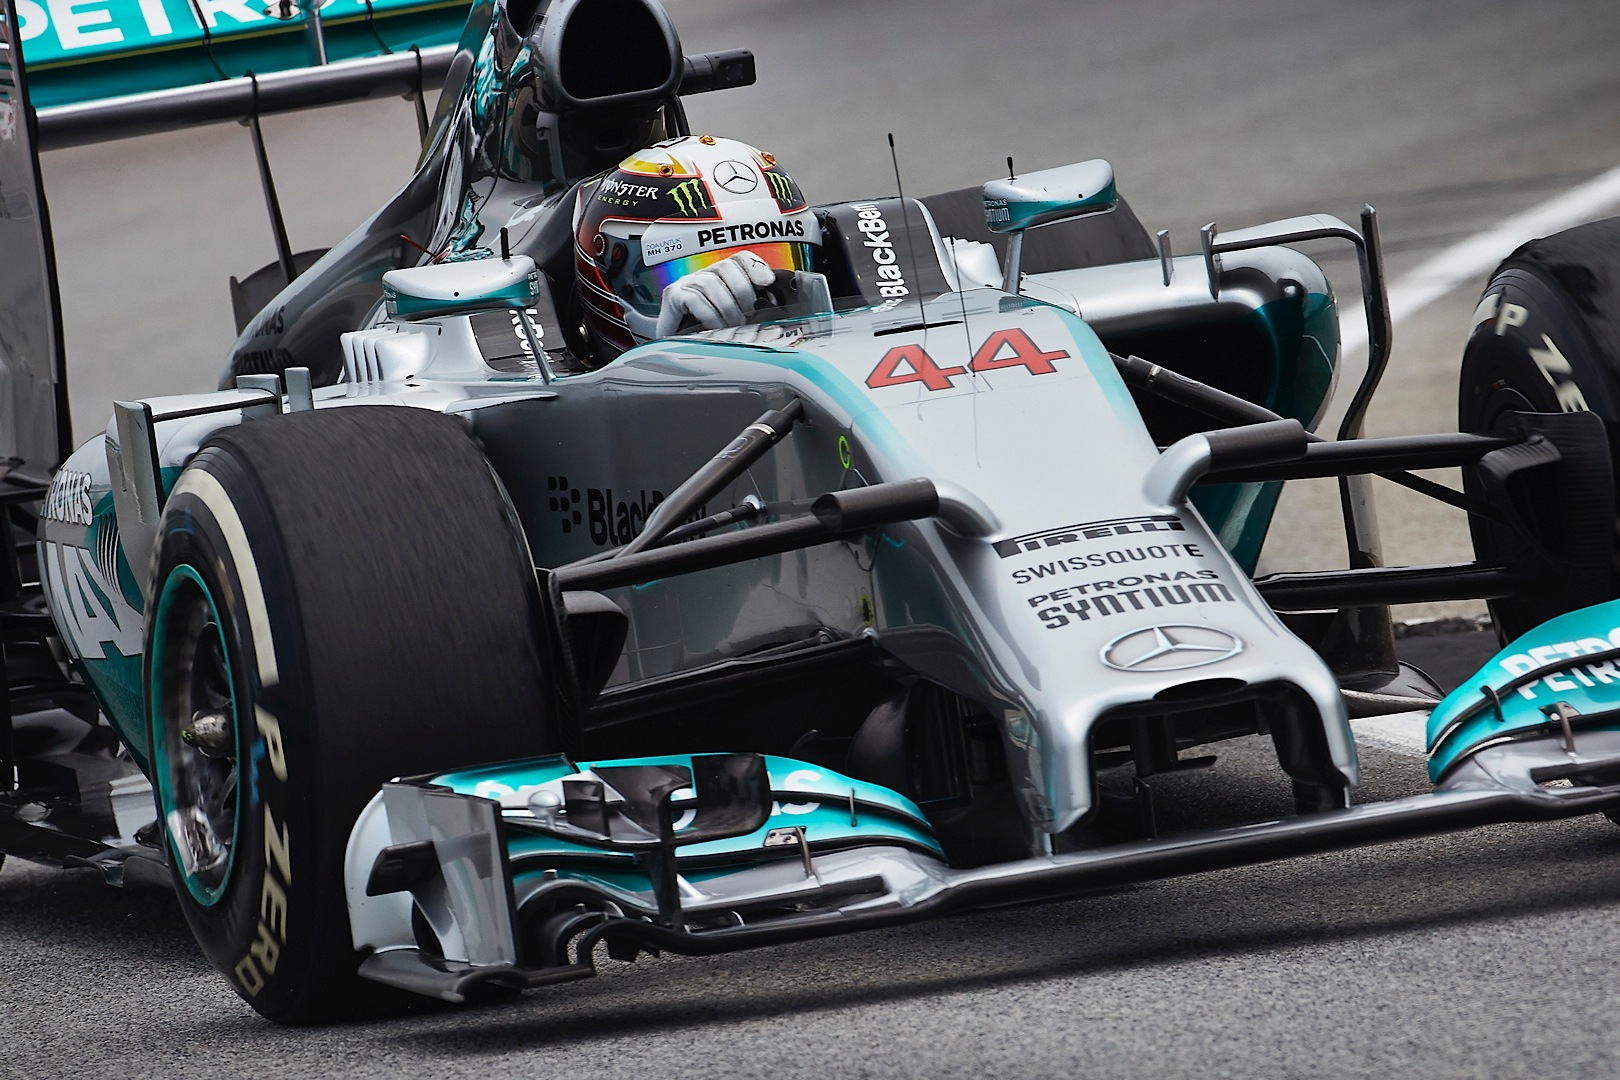 Mercedes benz has first one two finish in f1 in 58 years for Mercedes benz hat lewis hamilton